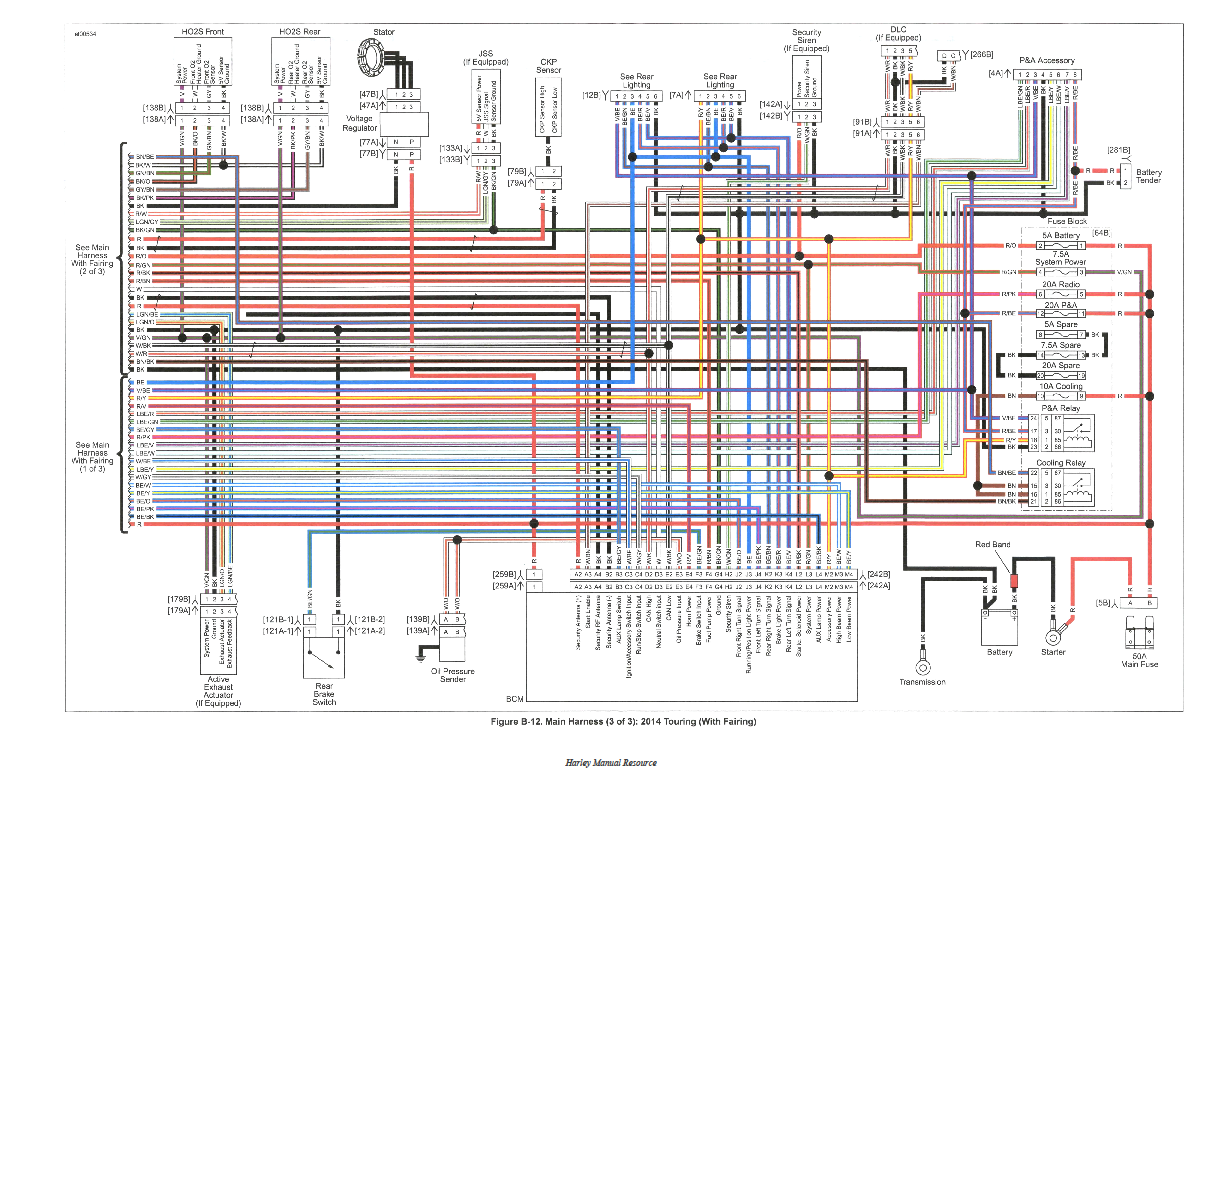 80 14_613_7162541d06ee90f59b30f0f216628817c66cf97f need 2014 or later street glide taillight wiring diagram harley 2014 harley davidson street glide wiring diagram at soozxer.org